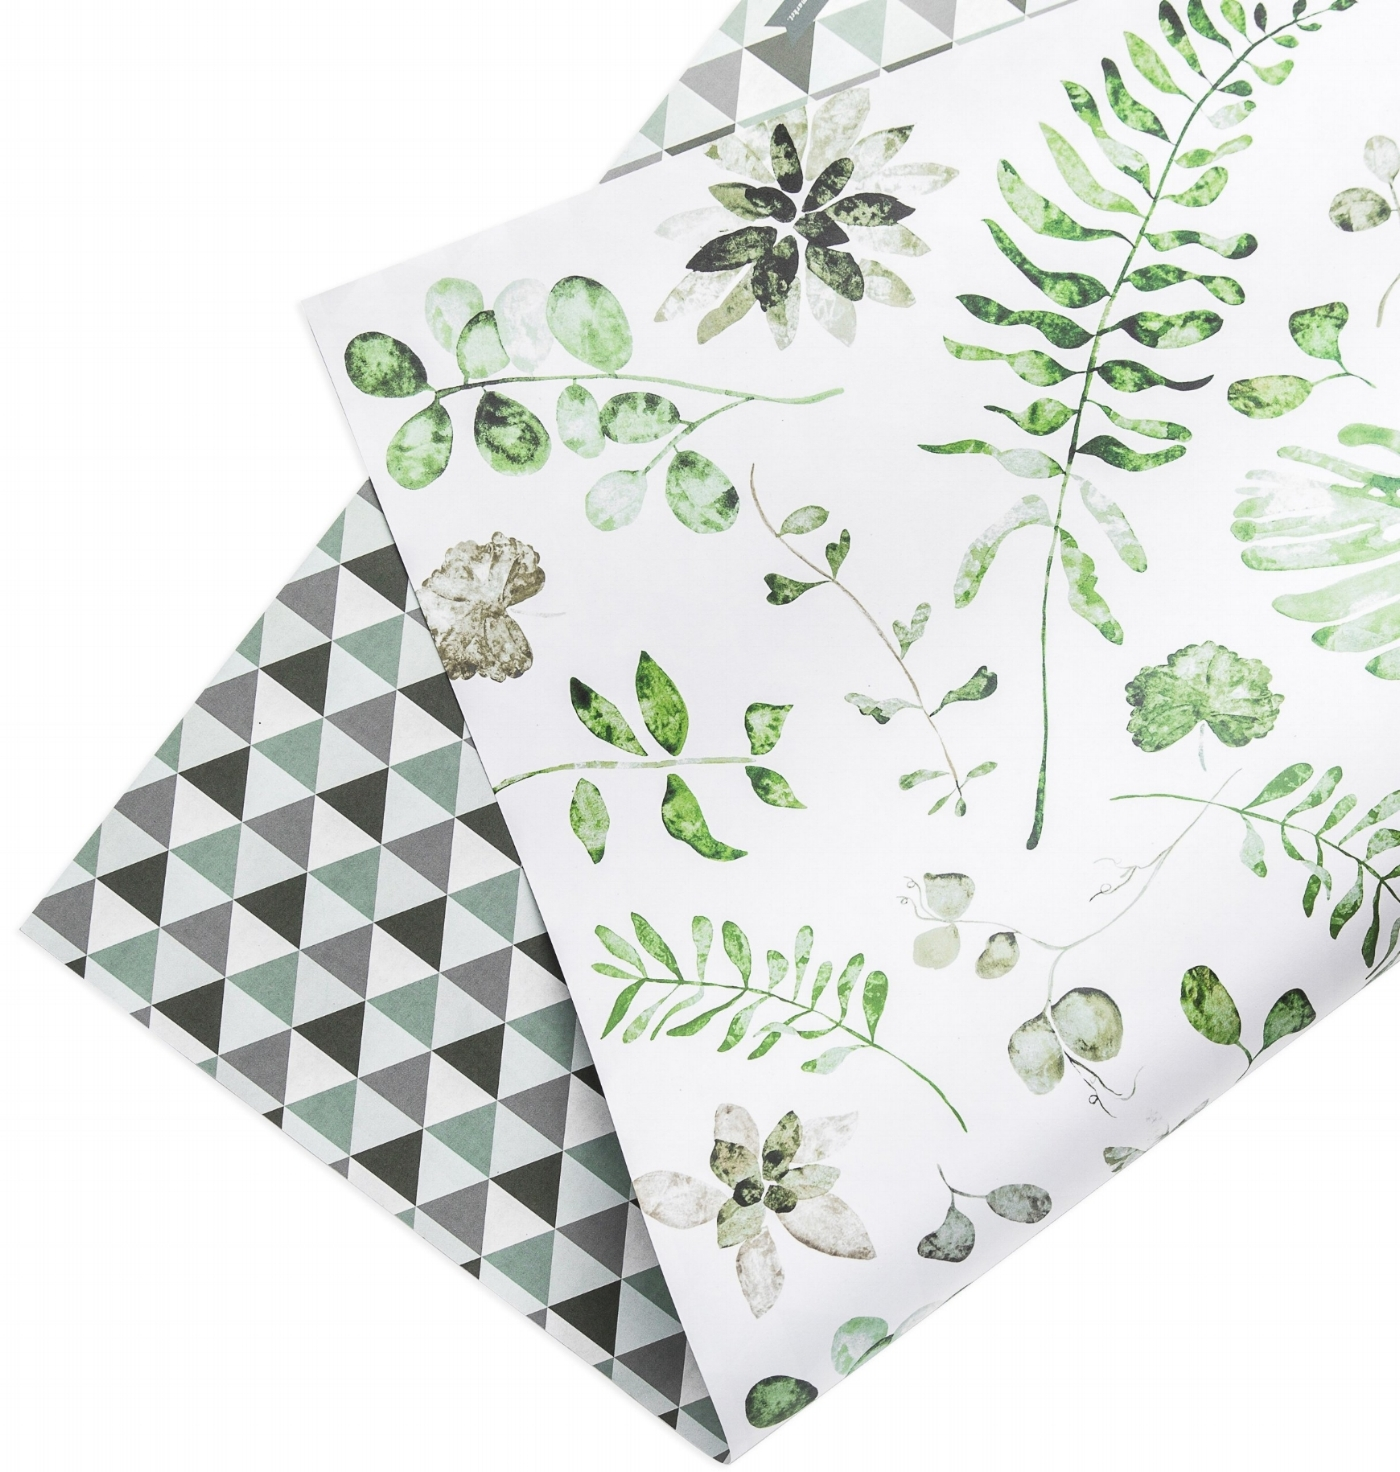 Fisher & Saint Emma Kate double-sided gift wrap,  €3.30